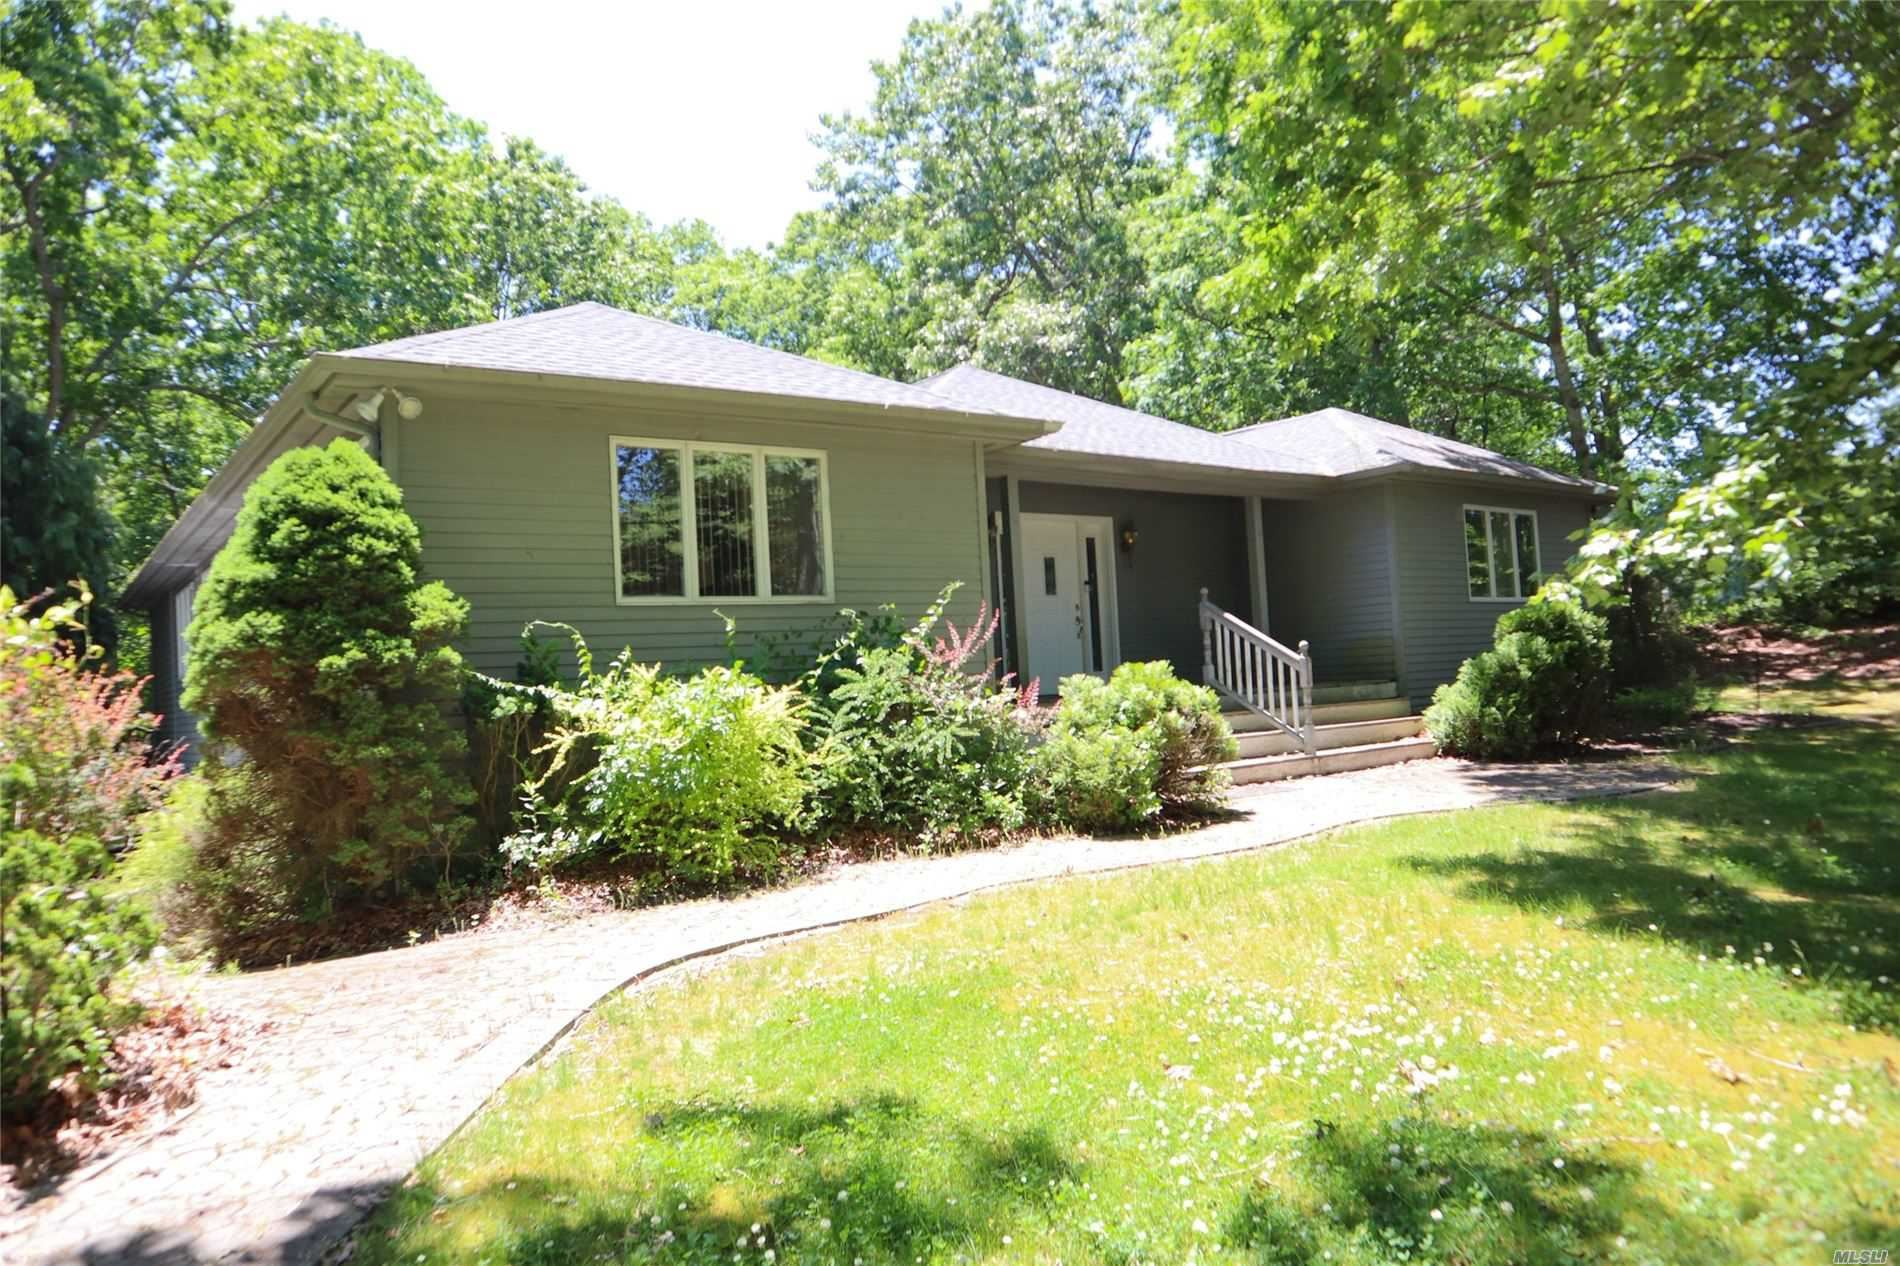 4 Chen Ct, Middle Island, NY 11953 - MLS#: 3220448